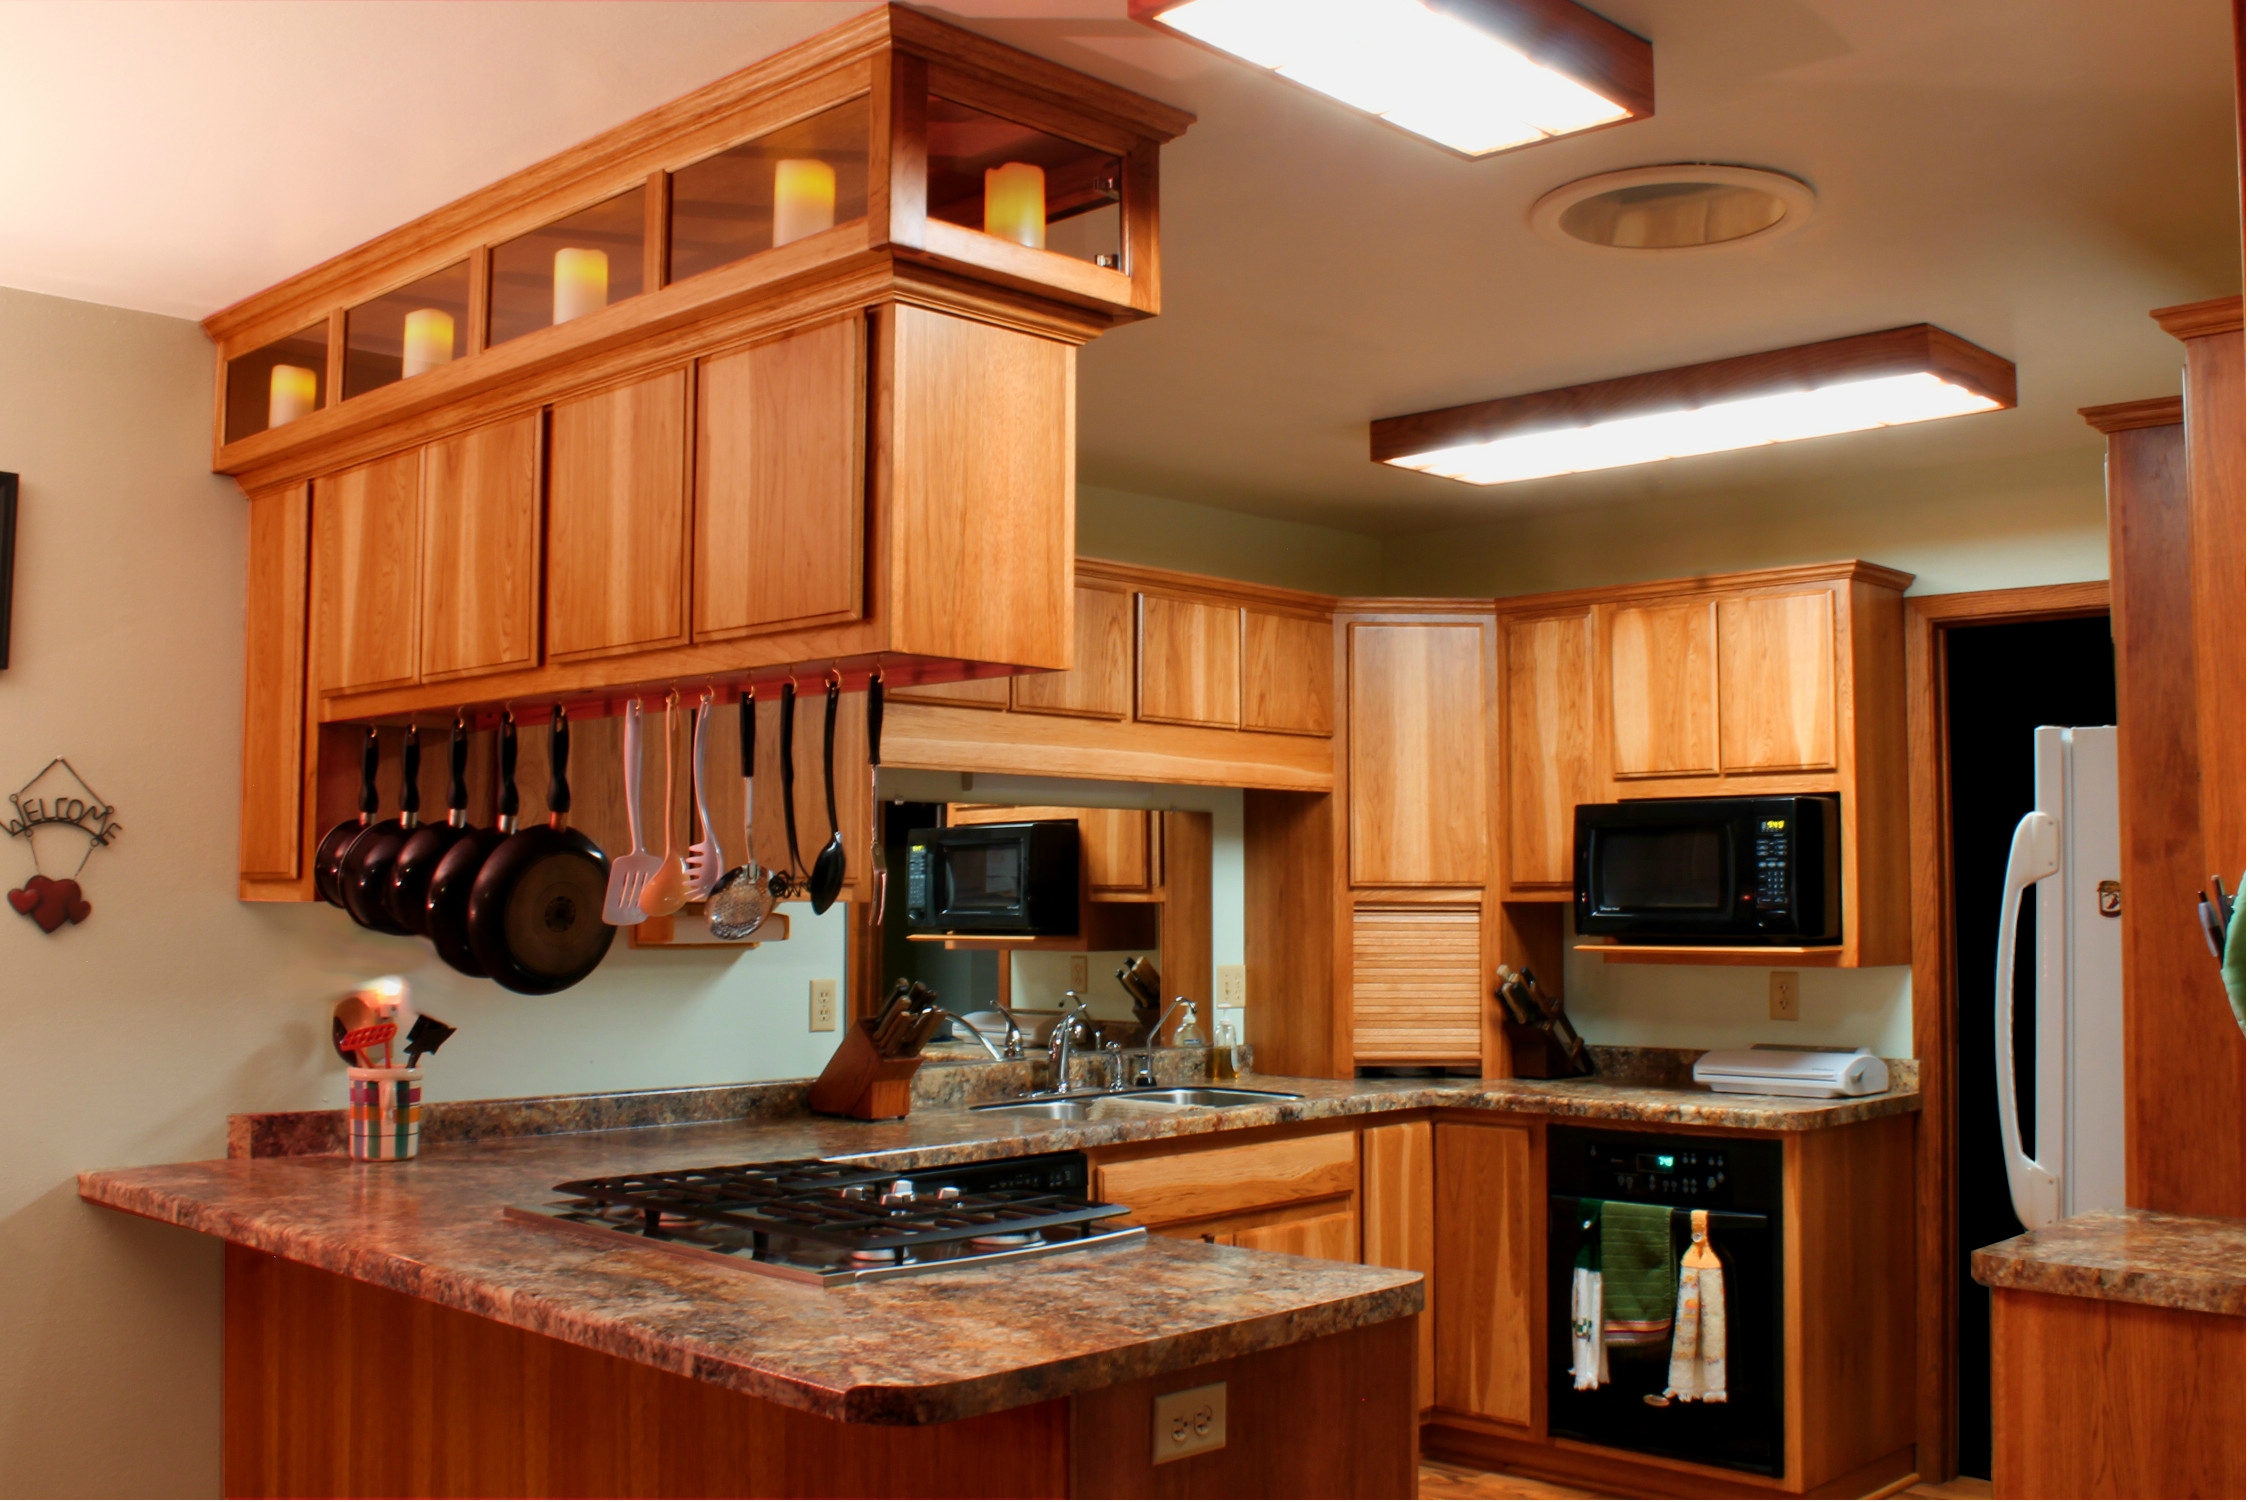 This Kitchen Custom Built In Hickory Features Contemporary Slab Doors